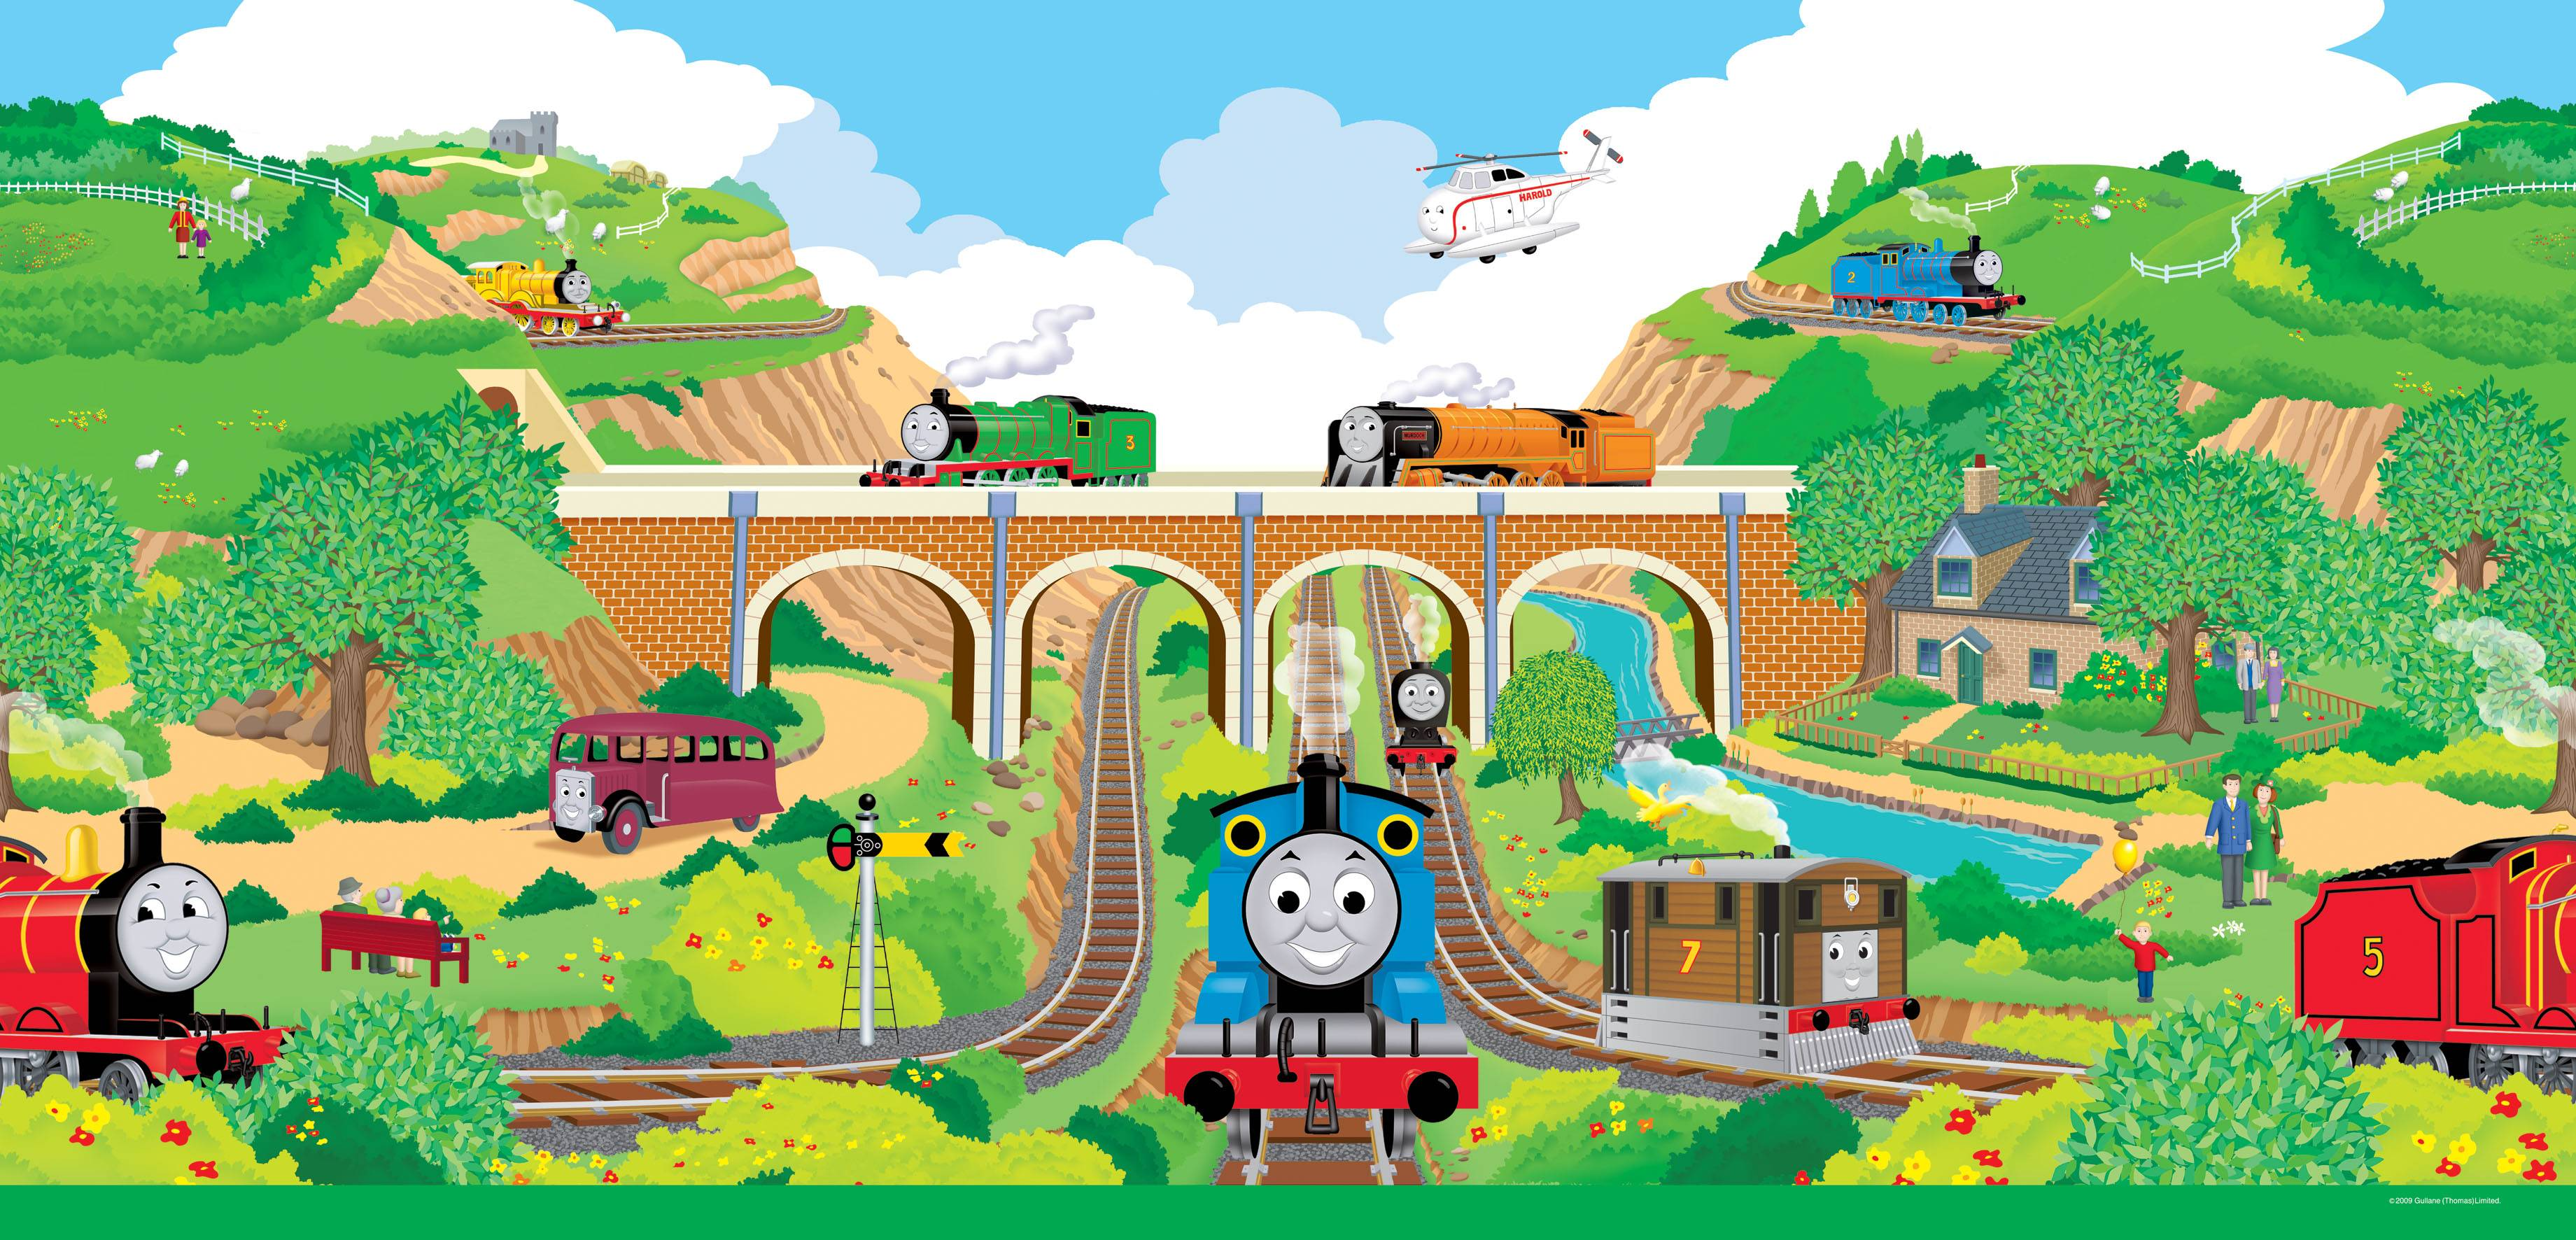 Thomas The Tank Engine Wall Murals Thomas The Tank Engine Wallpaper Wallpapersafari